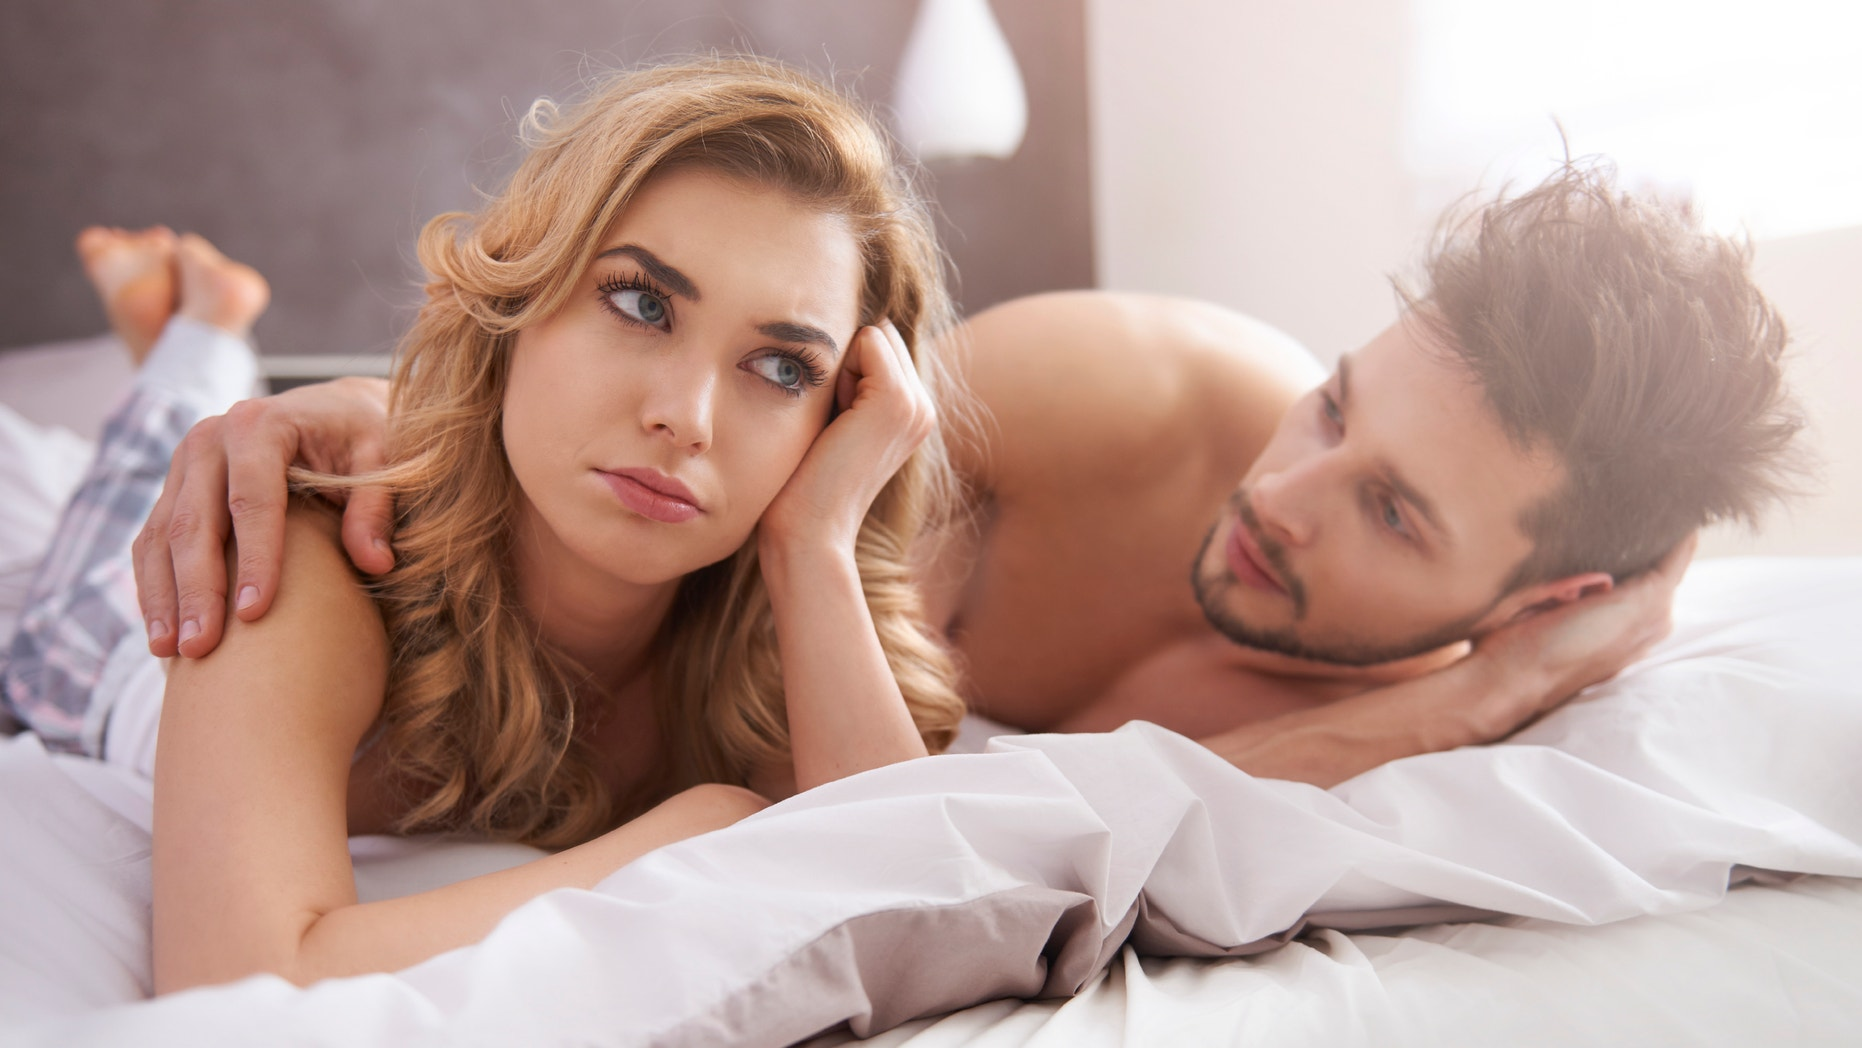 9 reasons you don't want to have sex anymore